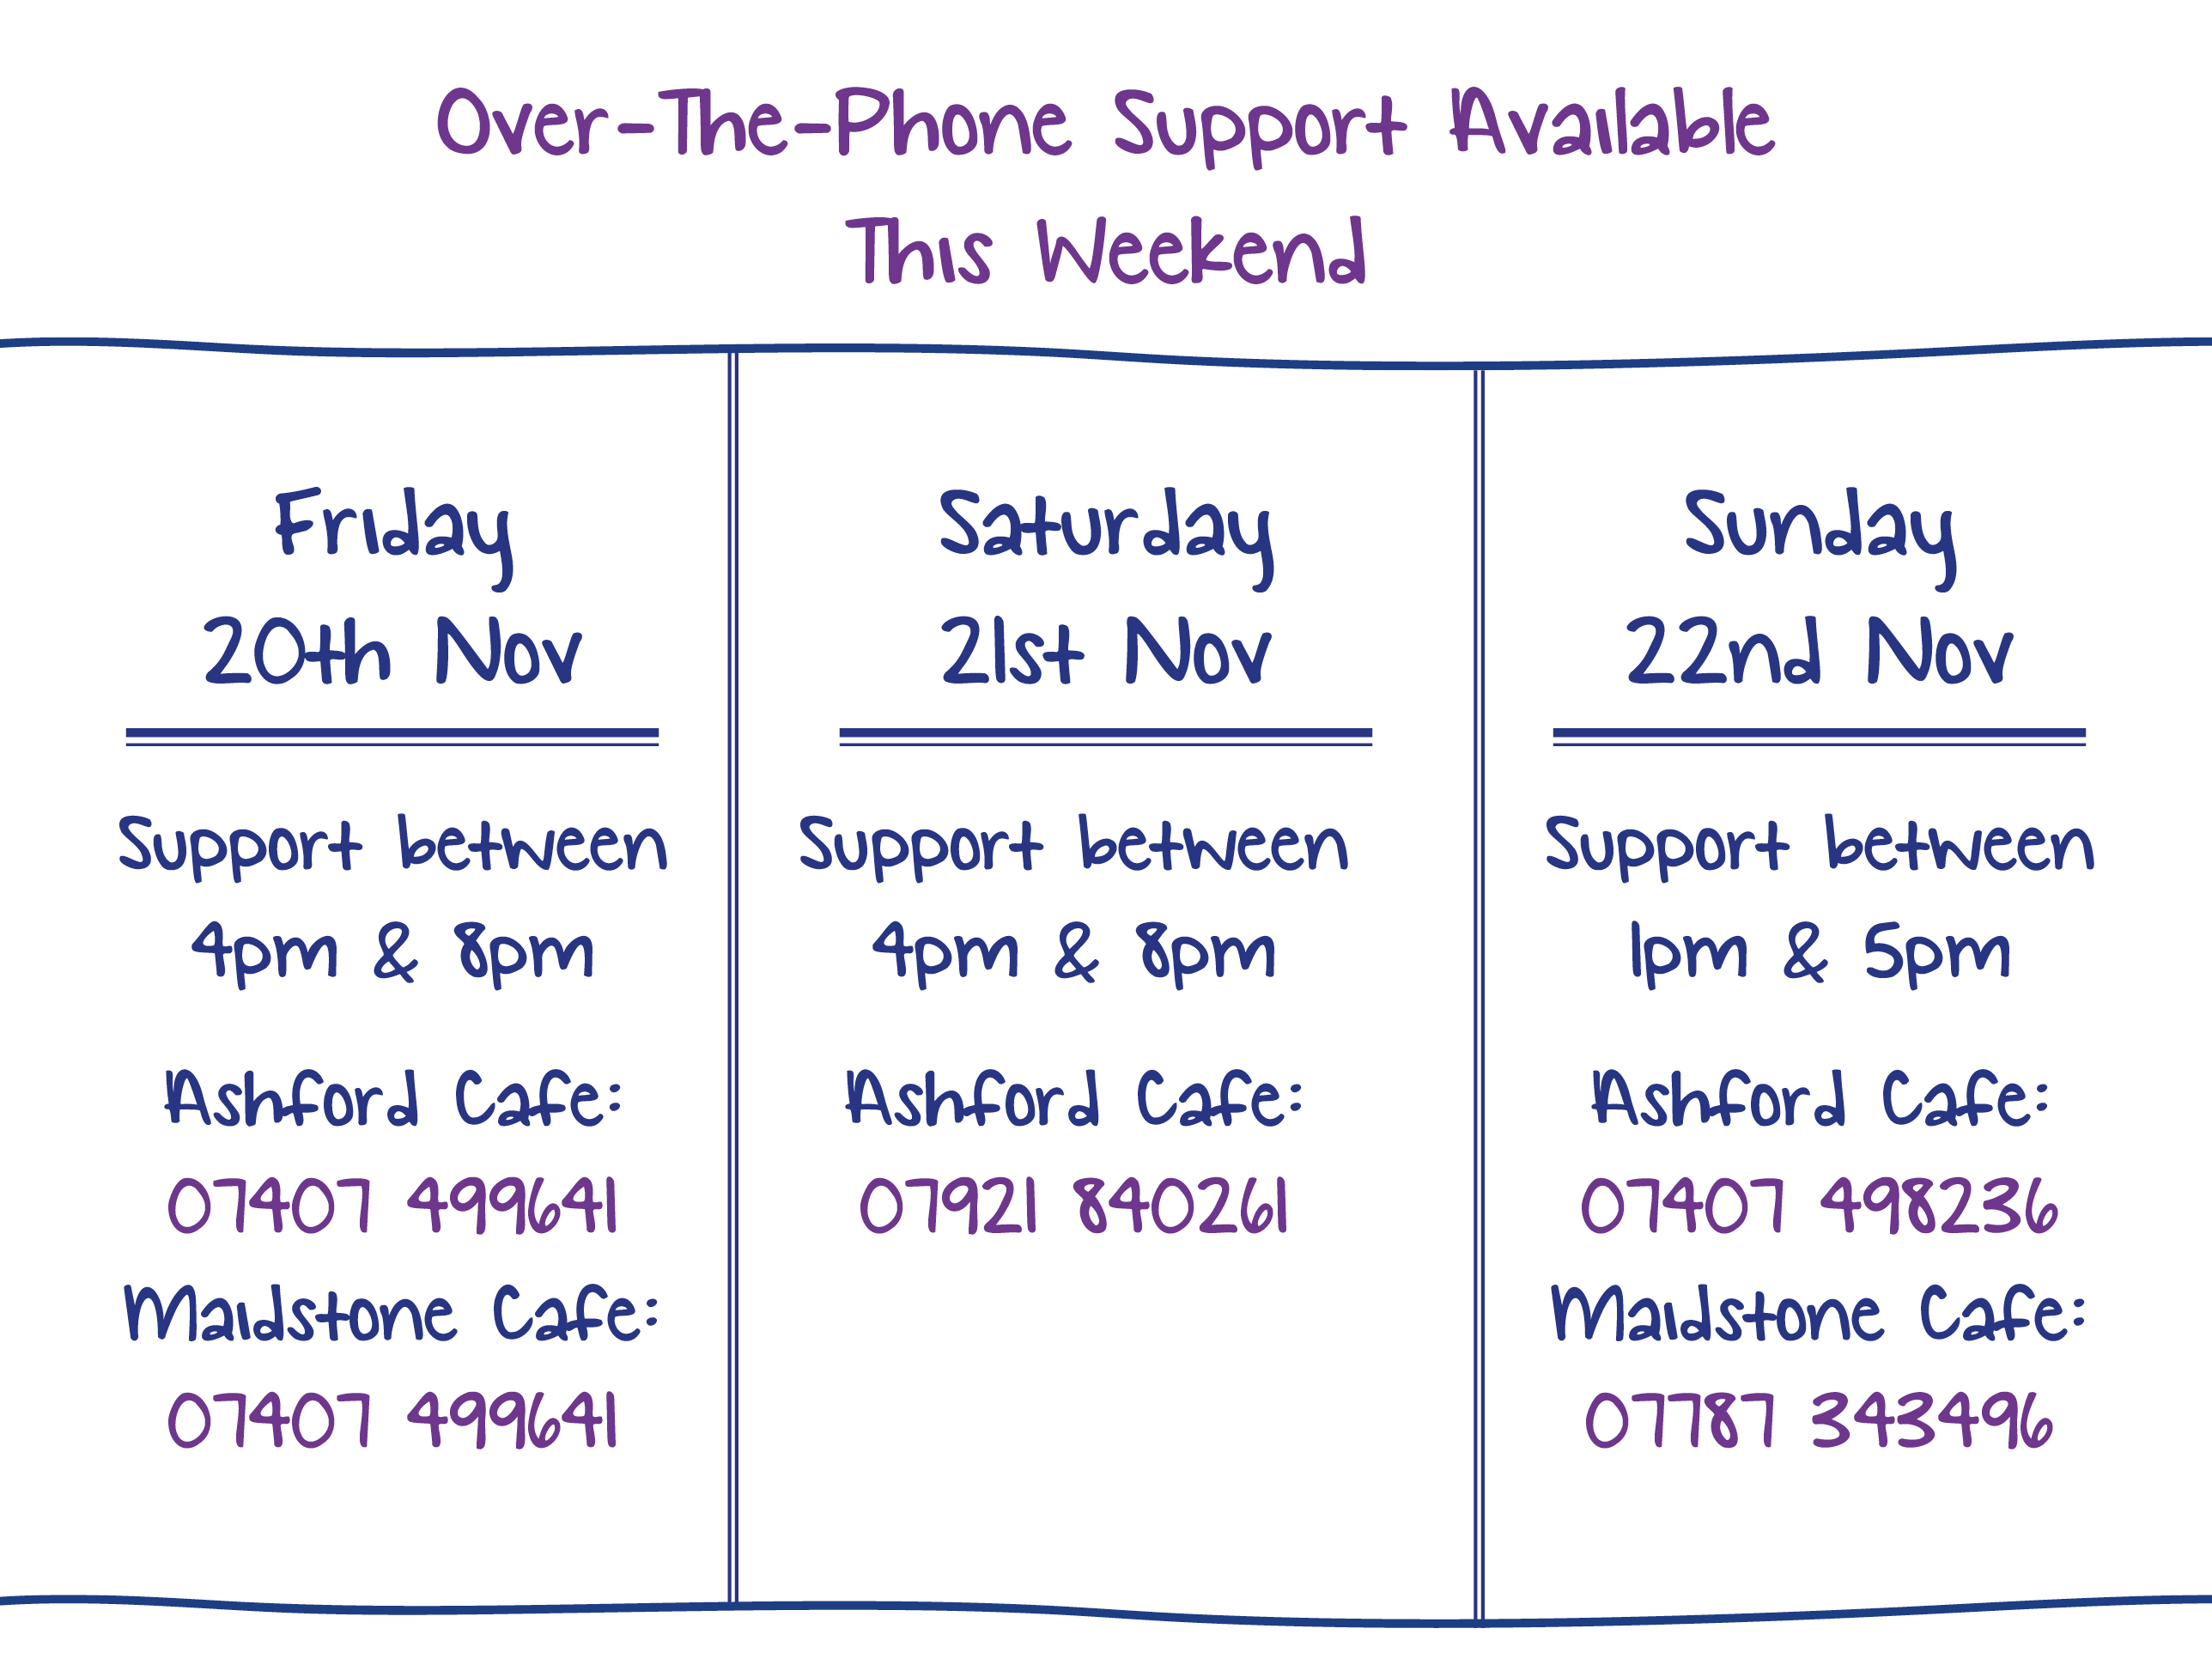 Over-The-Phone Support Available This Weekend. Friday 20th Nov. Support between 4pm & 8pm Ashford Cafe: 07407 499641 Maidstone Cafe: 07407 499641. Saturday 21st Nov. Support between 4pm & 8pm Ashford Cafe: 07921 840261. Sunday 22nd Nov. Support between 1pm & 5pm Ashford Cafe: 07407 498236 Maidstone Cafe: 07787 343496.